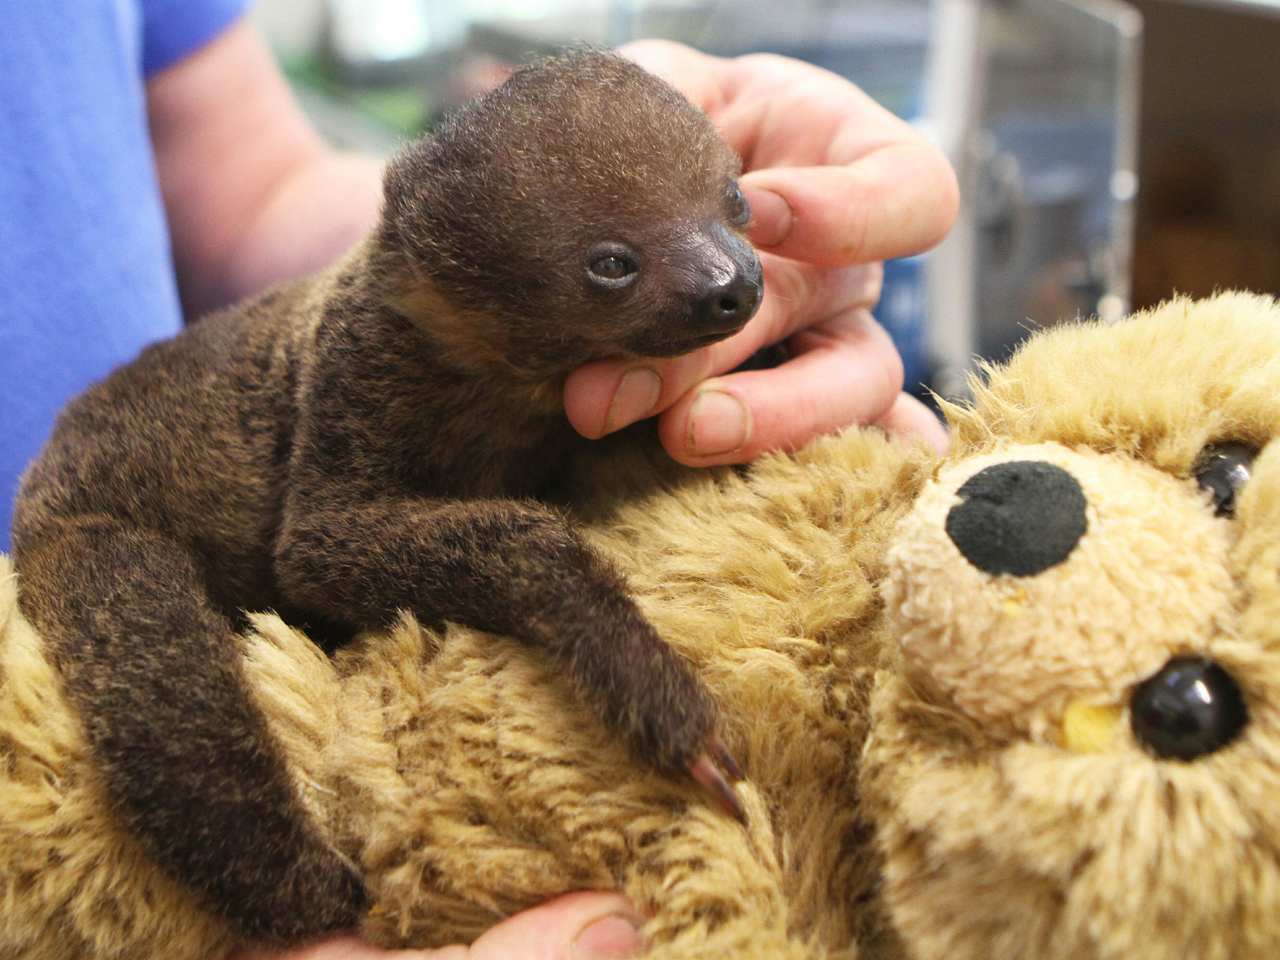 Are You My Mommy Baby Sloth Adopts Teddy Bear As Mother